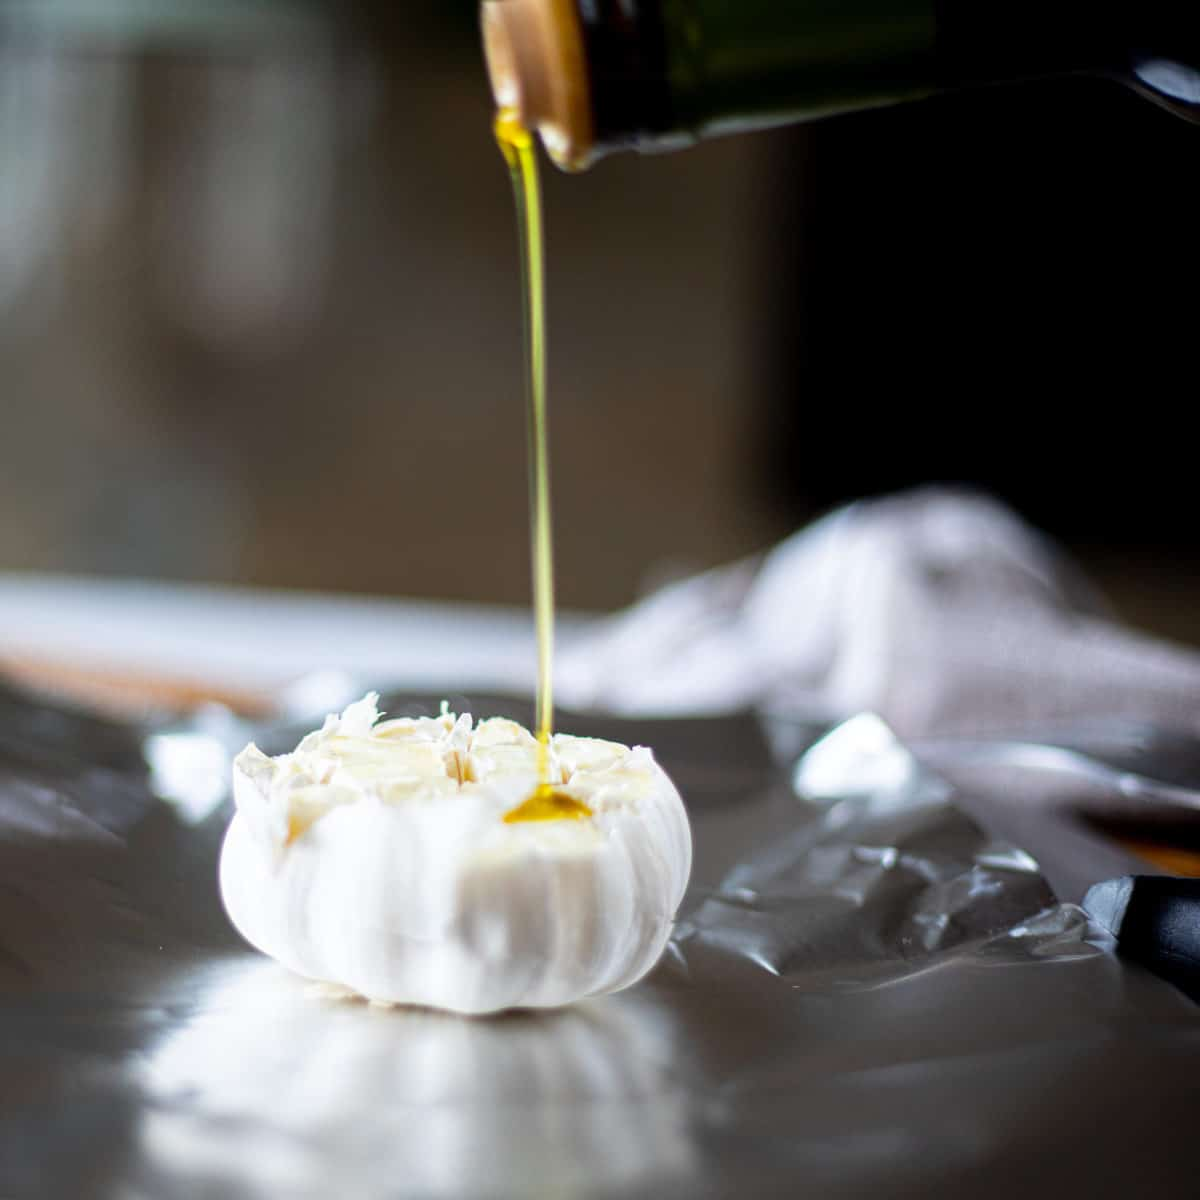 A head of garlic on tin foil with olive oil being drizzled onto it.